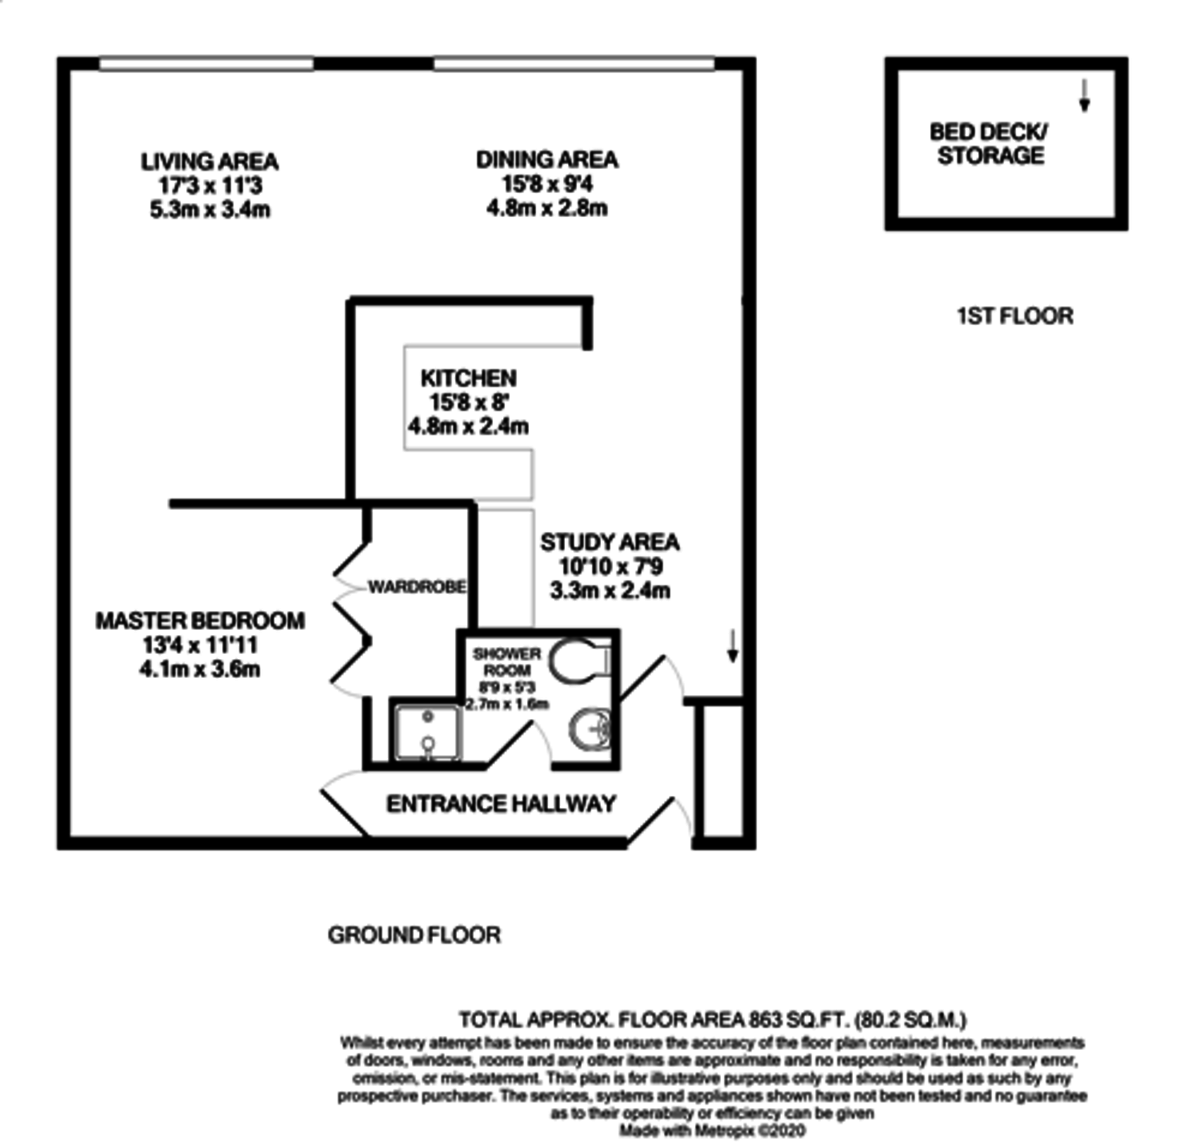 Ludgate Lofts, 17 Ludgate Hill, Birmingham City Centre floorplan 1 of 1